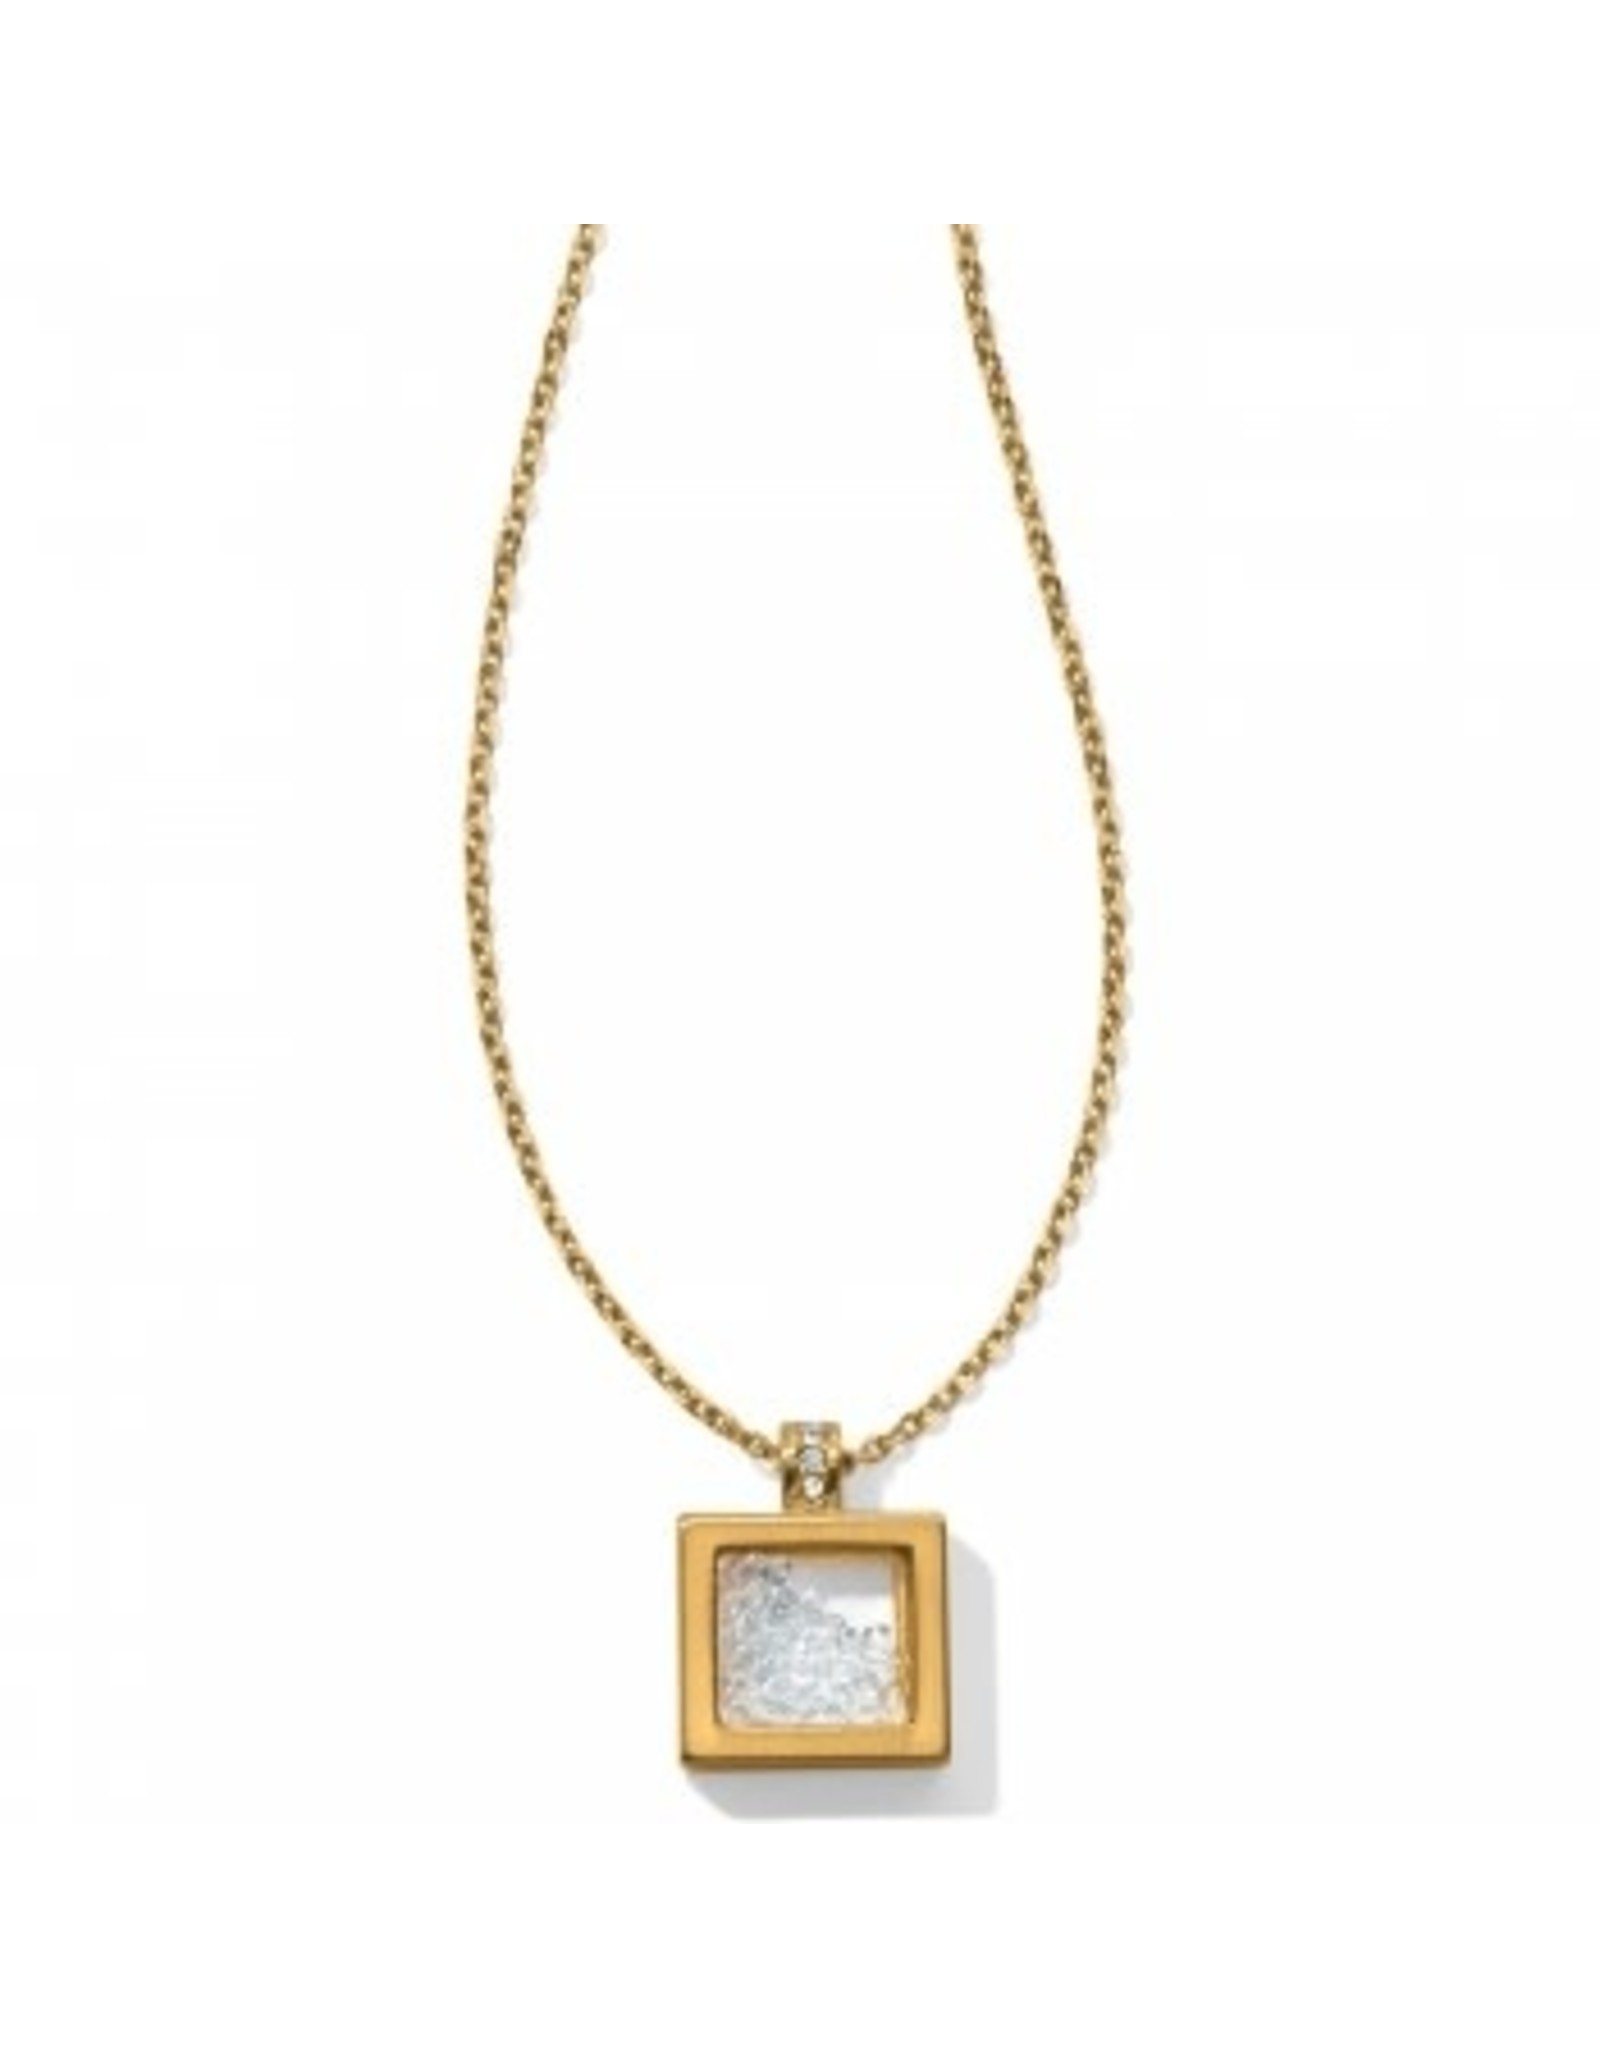 Brighton Meridian Zenith Shaker Necklace